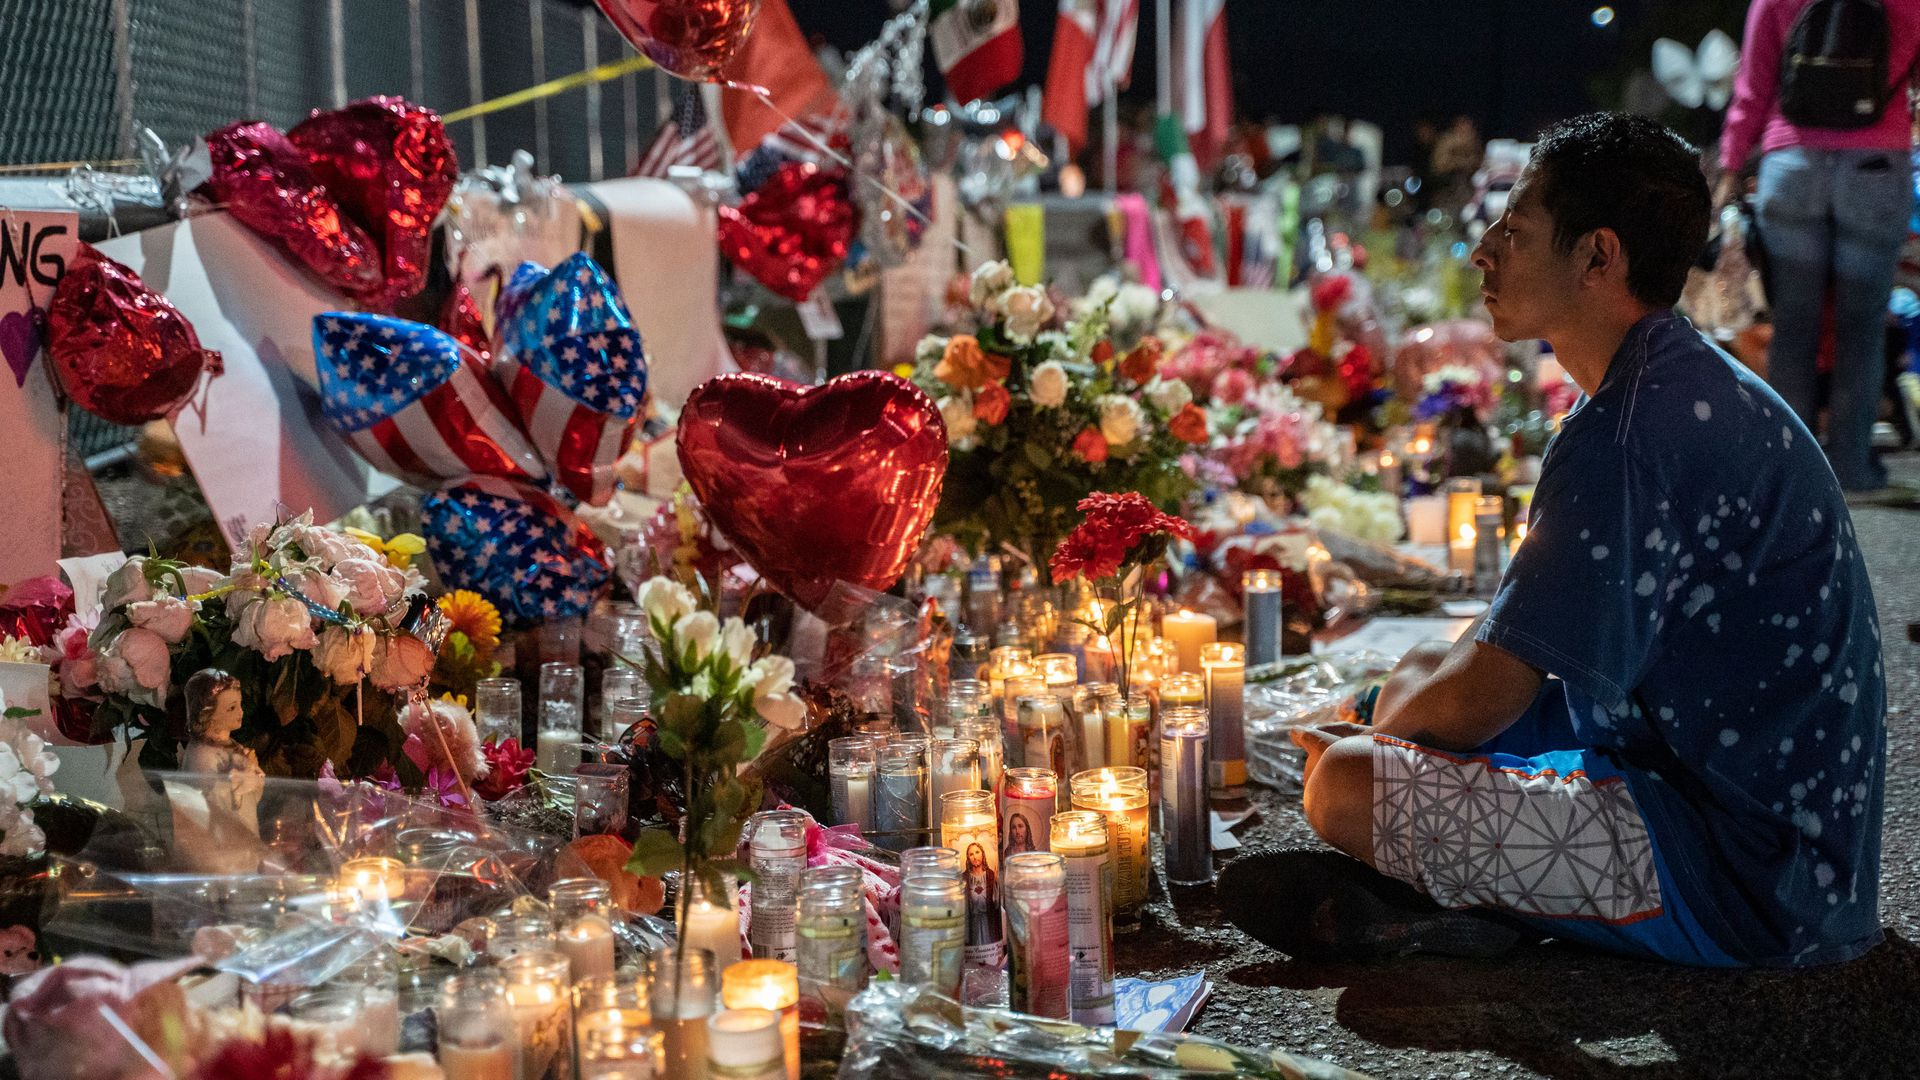 A man sitting at a memorial for El Paso victims.